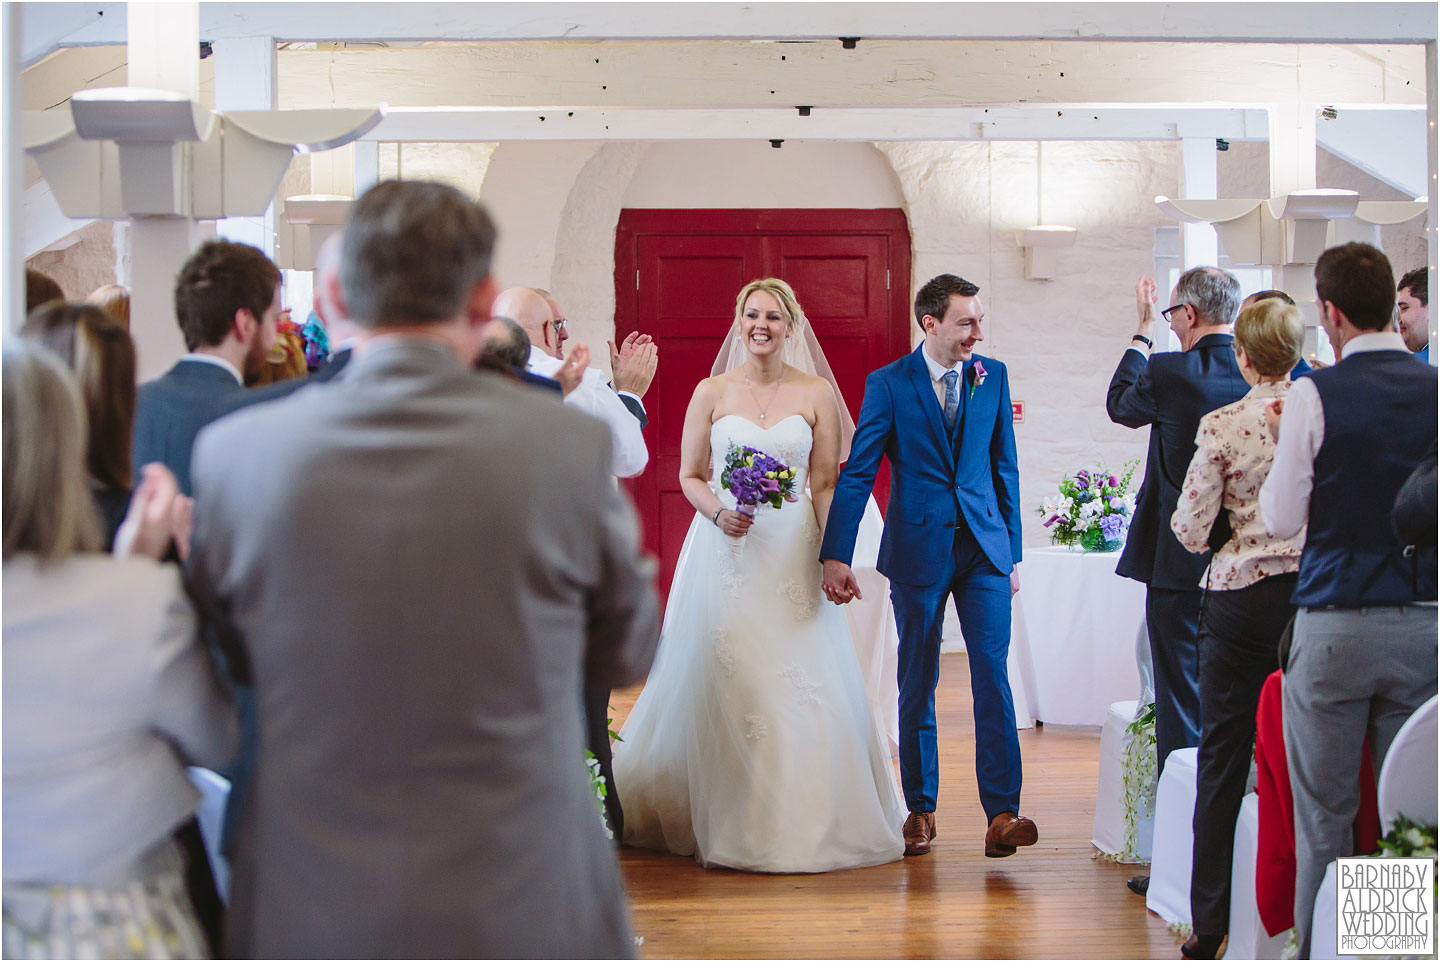 Walking down the aisle at a Standege Visitors Centre wedding in Yorkshire